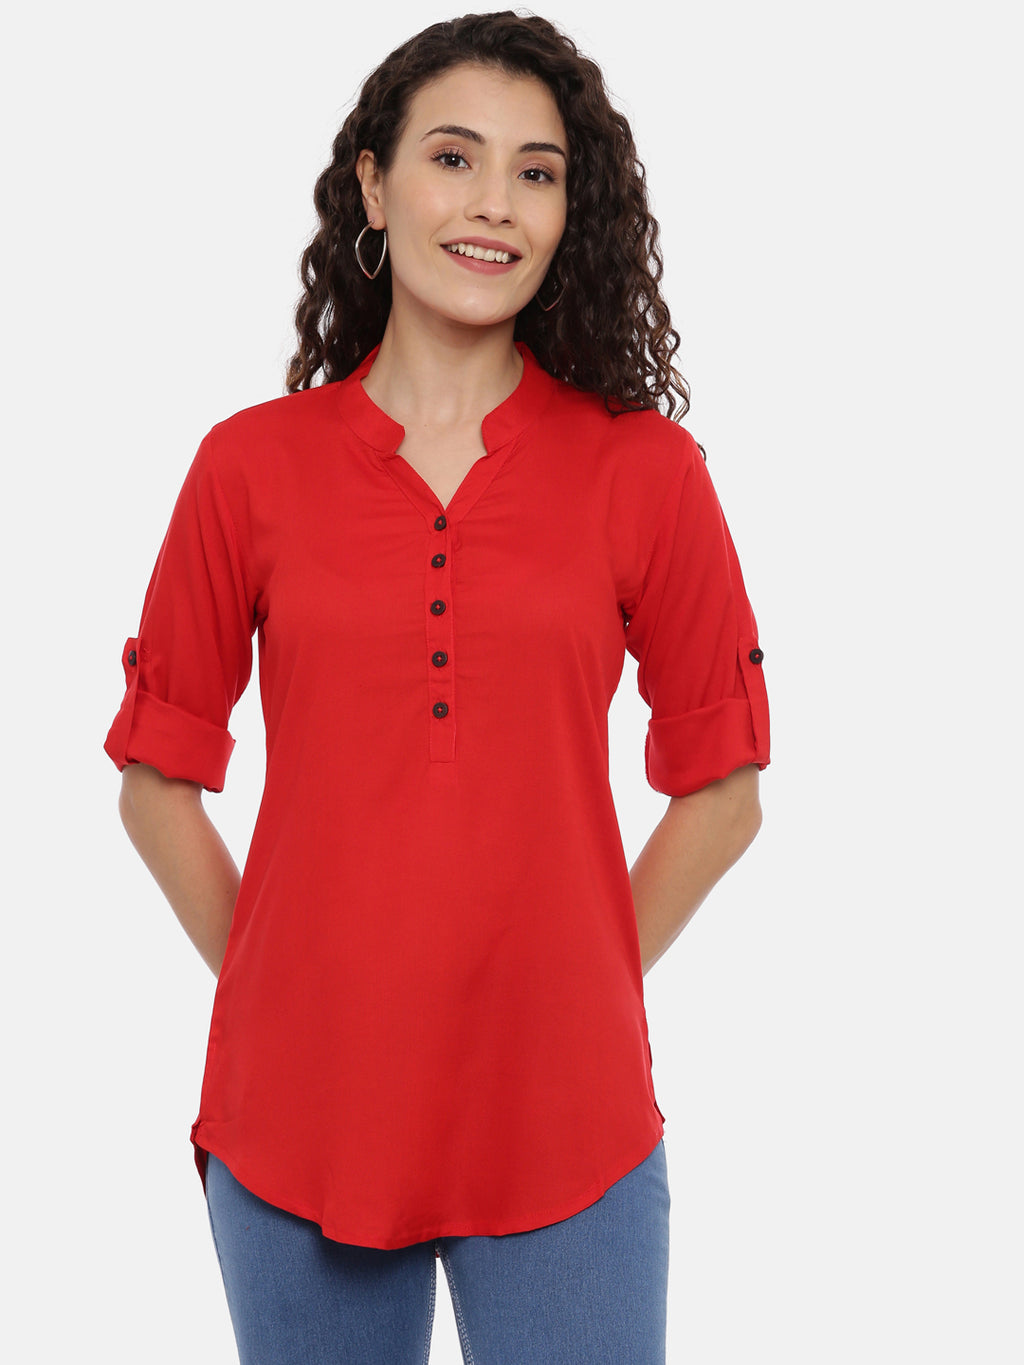 Arana Women's Rayon Red Colour Plain Top